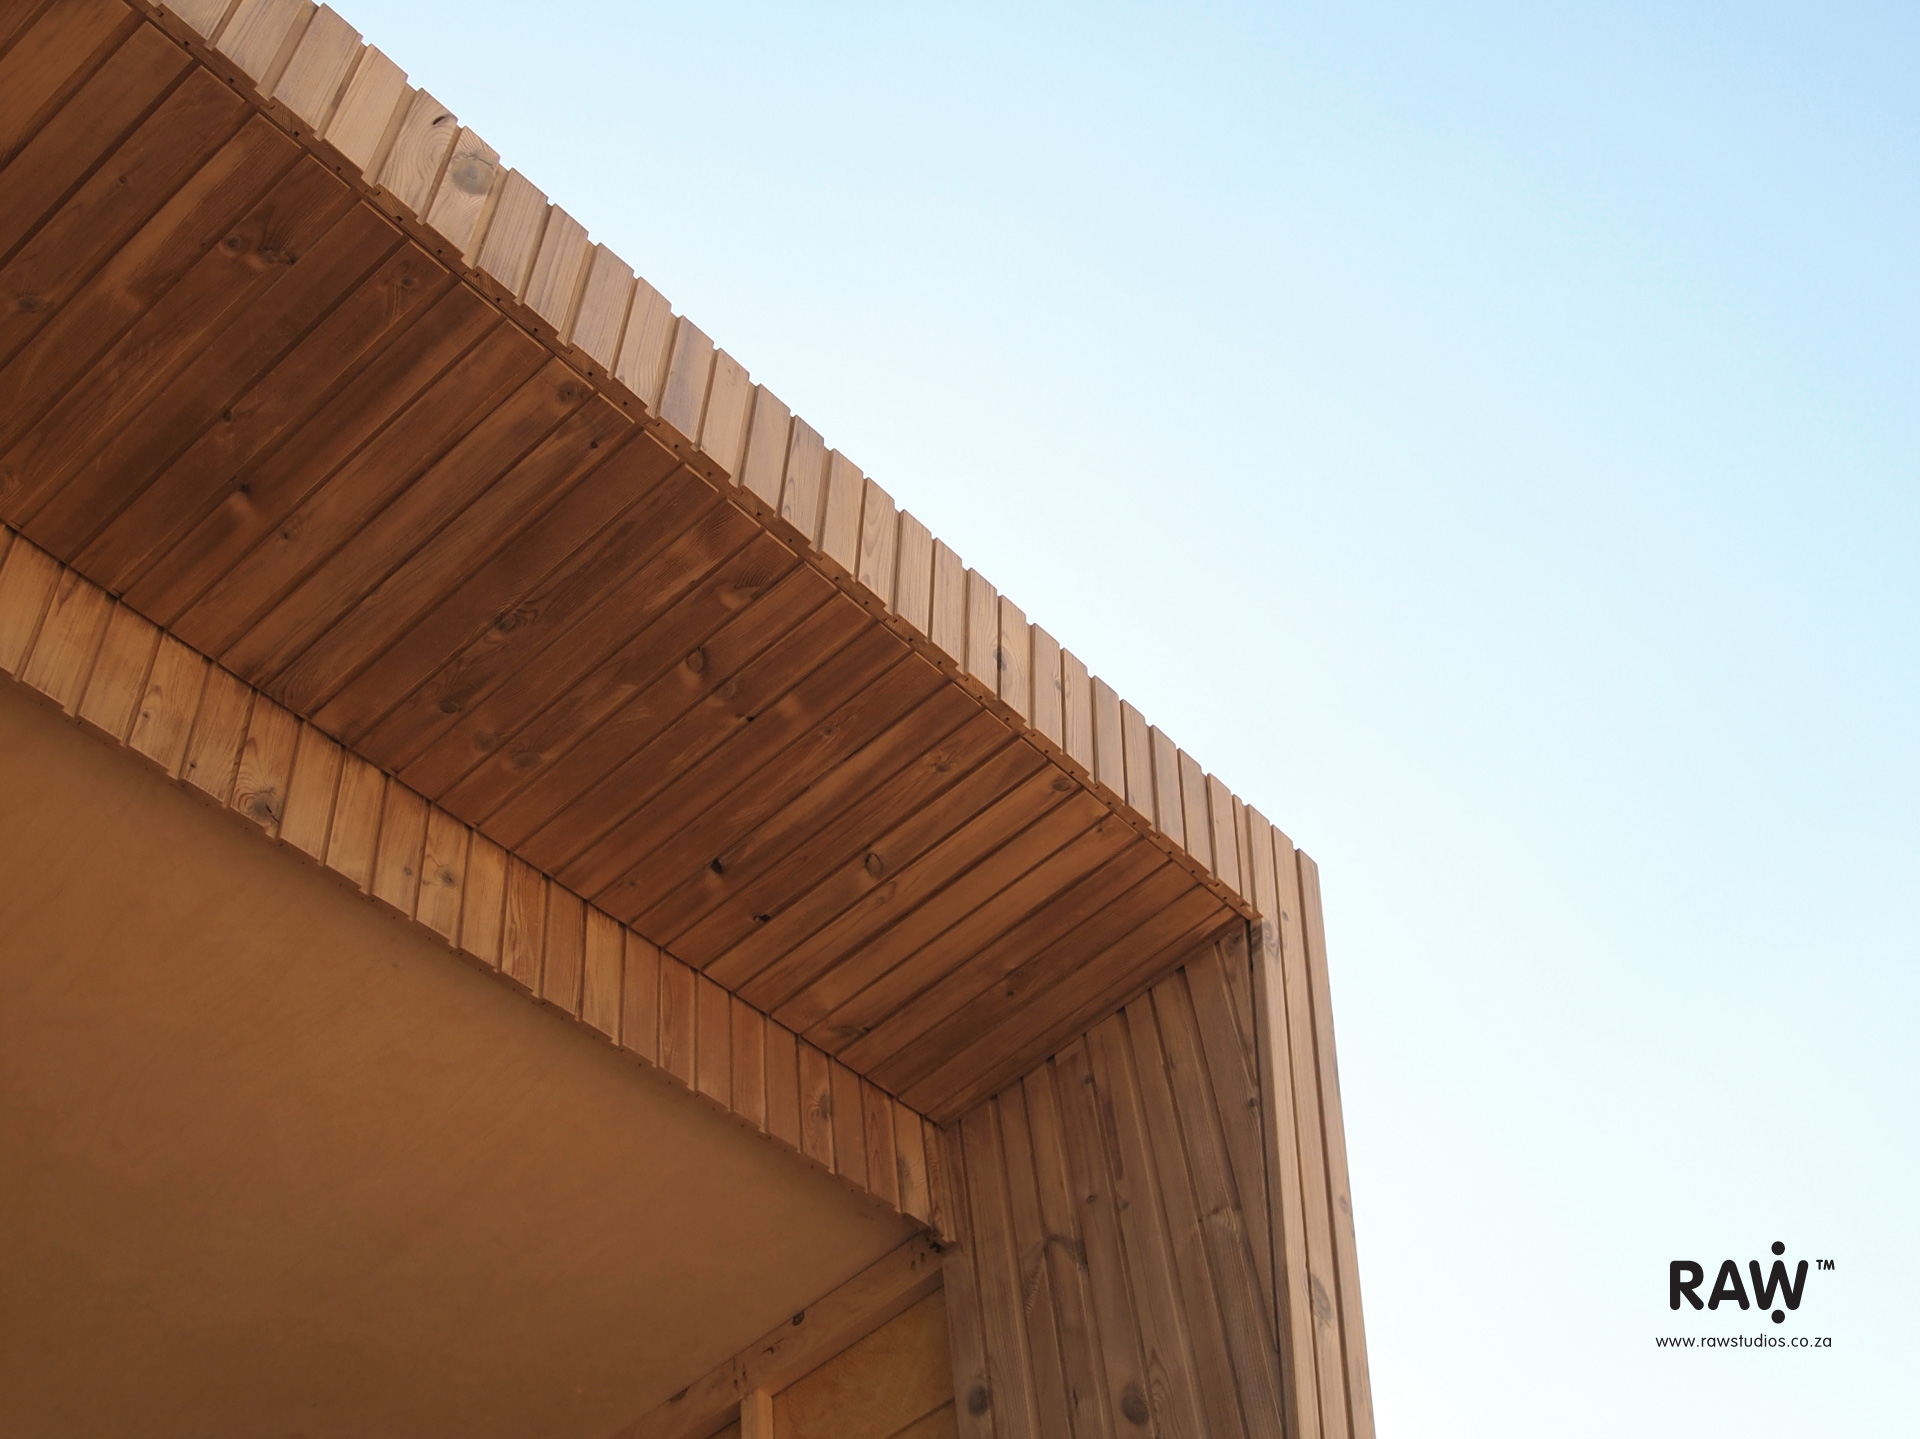 Nestling: Micro-living container, small living places with engineered wood materials